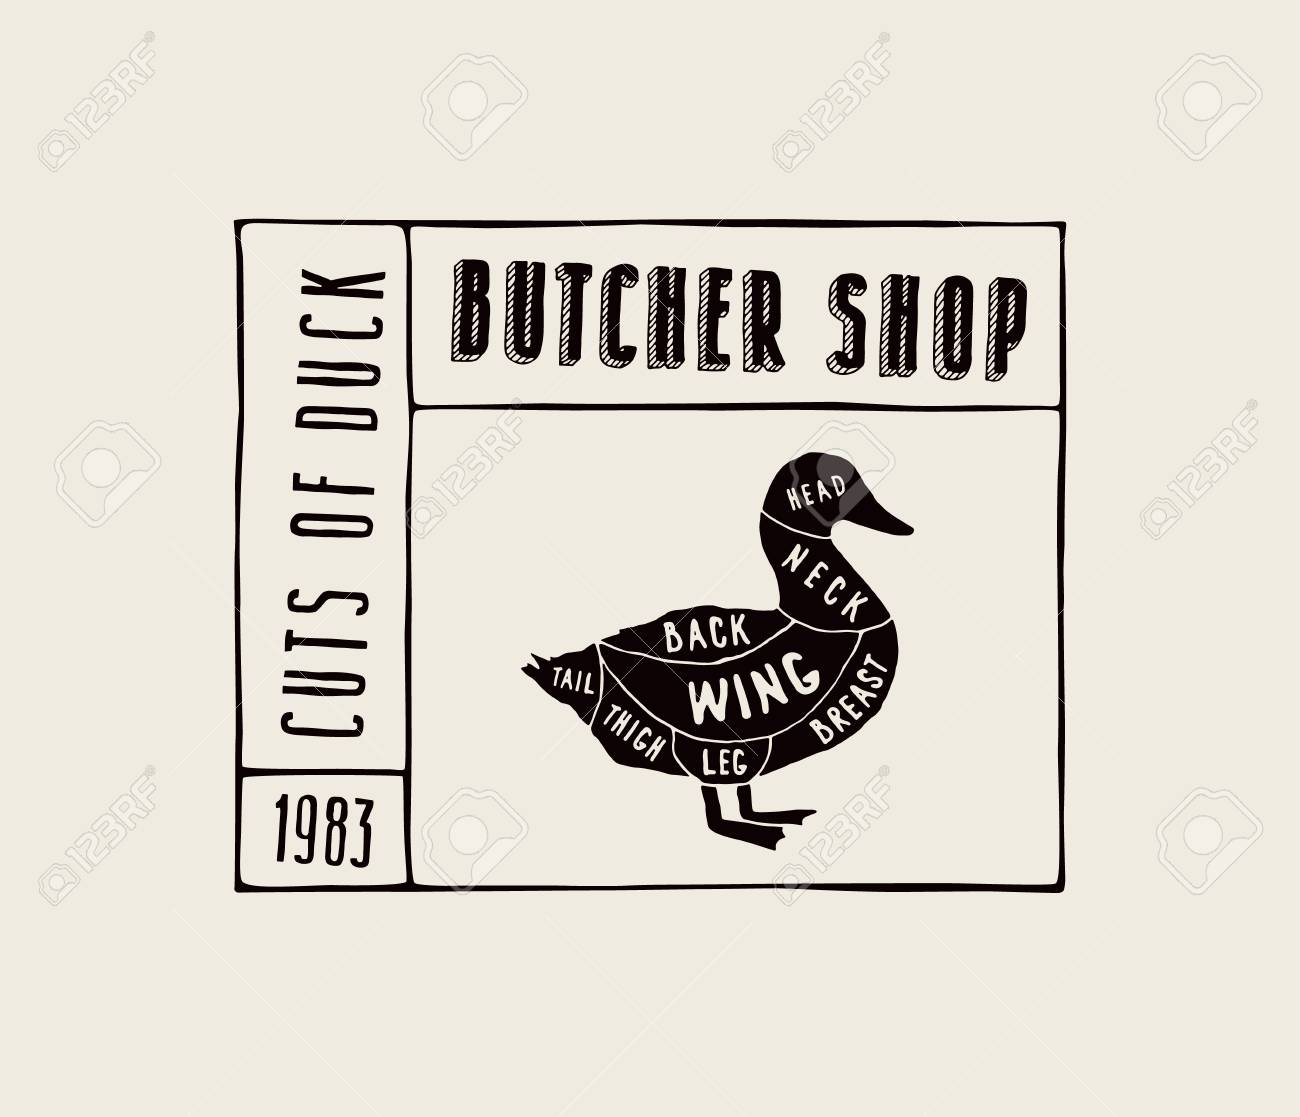 duck wing diagram wiring lights stock vector in the style of handmade graphics label template for butcher shop